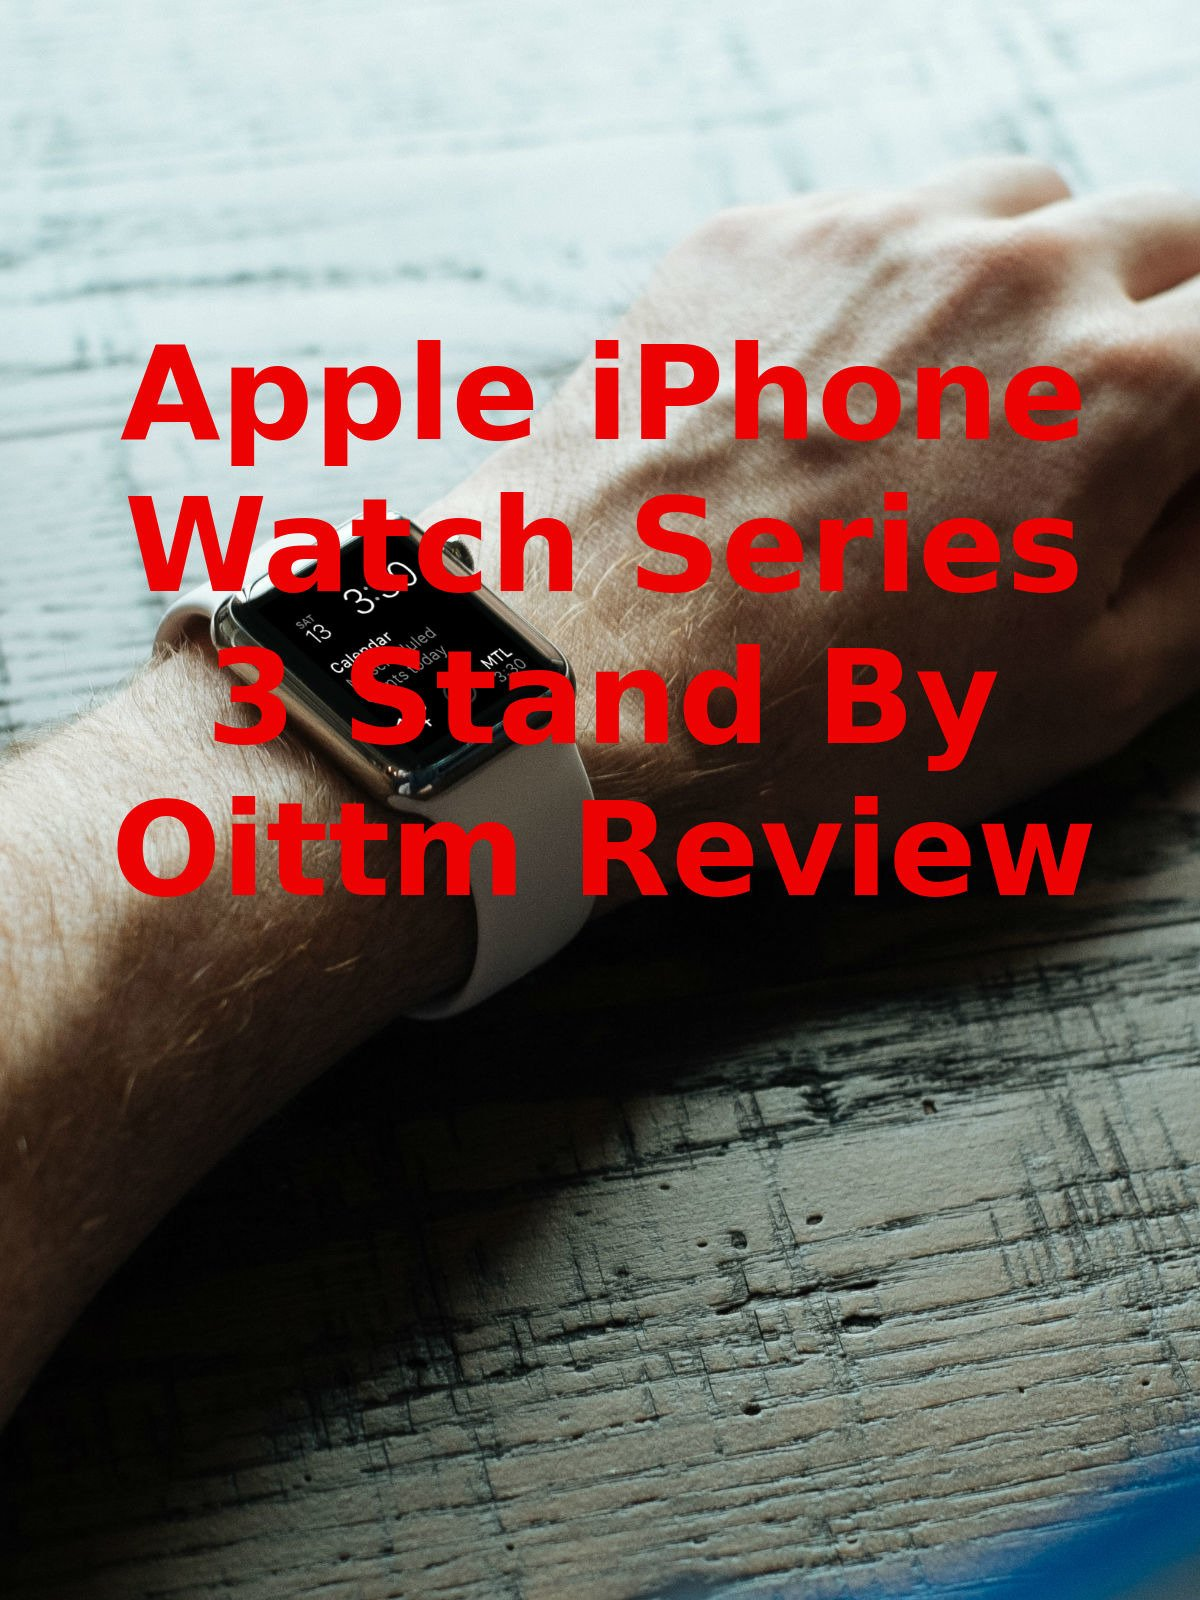 Review: Apple iPhone Watch Series 3 Stand By Oittm Review on Amazon Prime Video UK